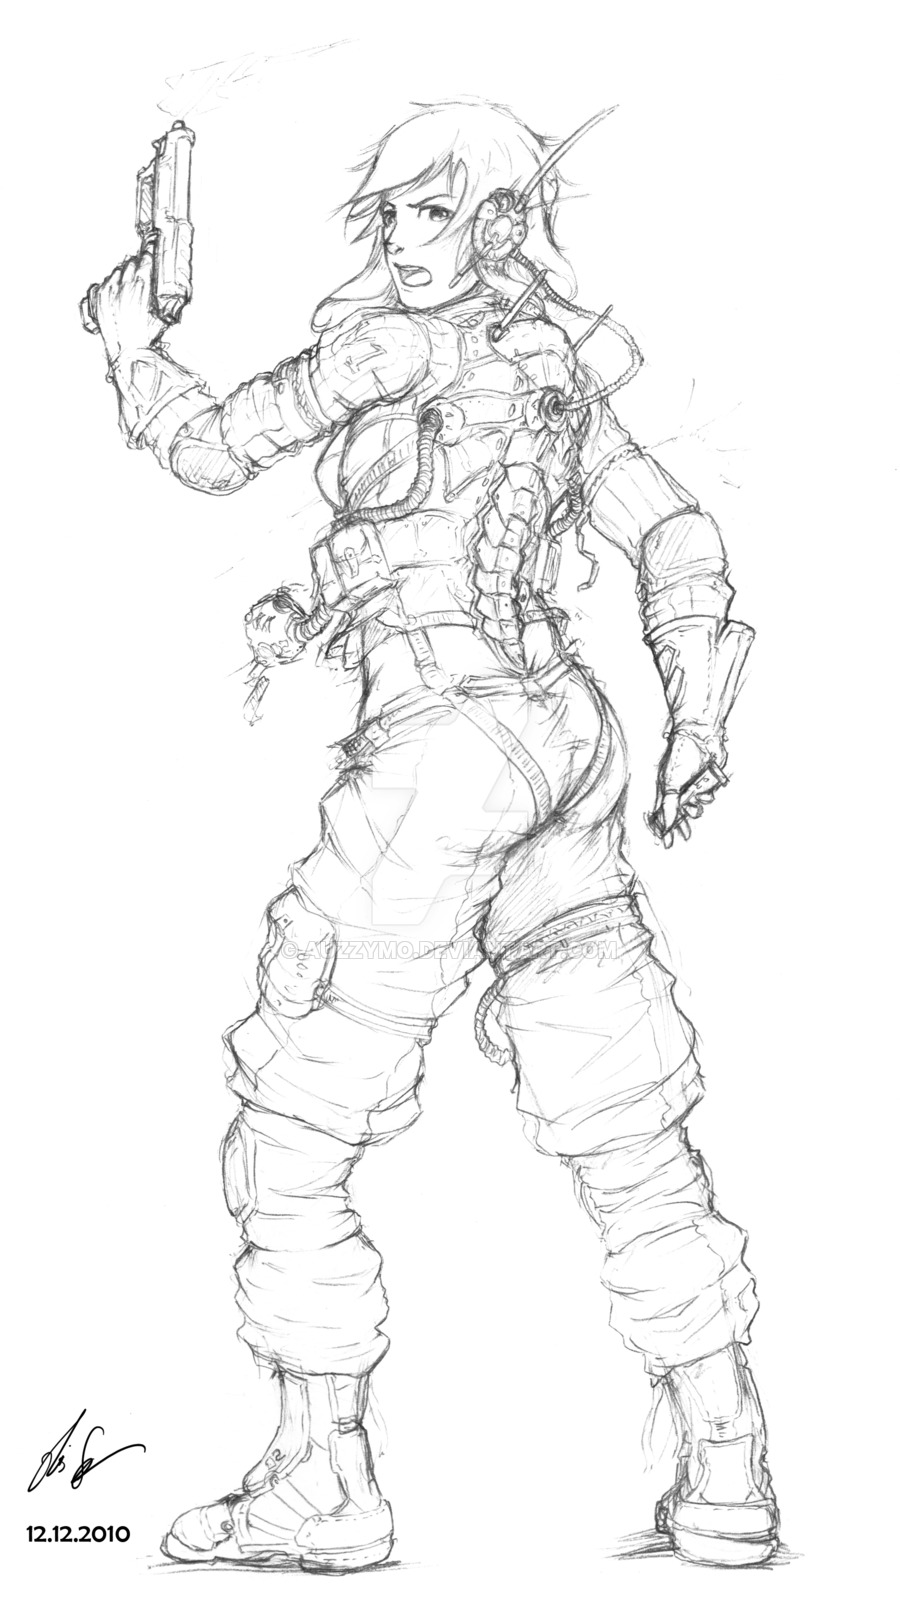 900x1600 Anime Female Soldier Drawings Anime Weapon Drawings